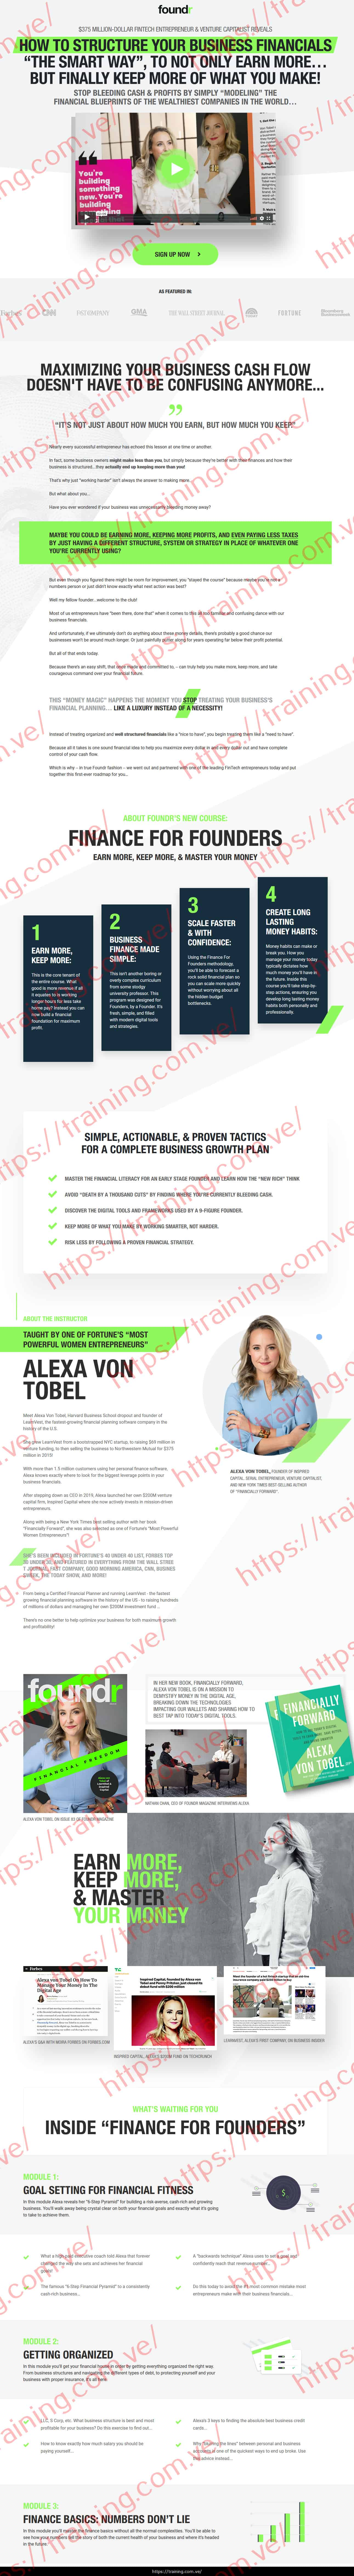 Finance For Founders by Foundr Alexa Von Tobel Sales Page